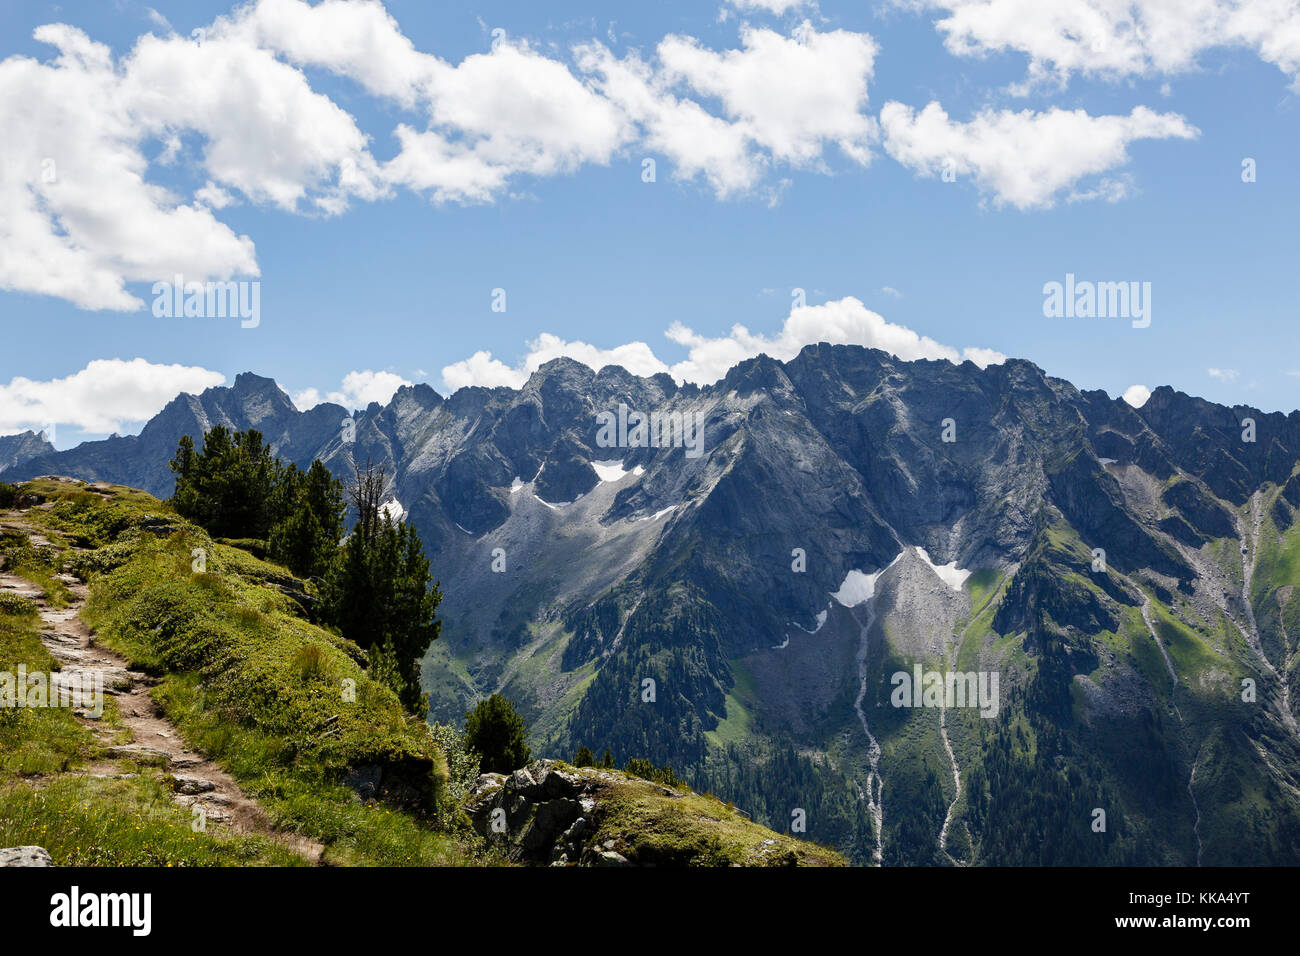 View from the Ahorn Mountain, Mayrhofen, Austria - Stock Image